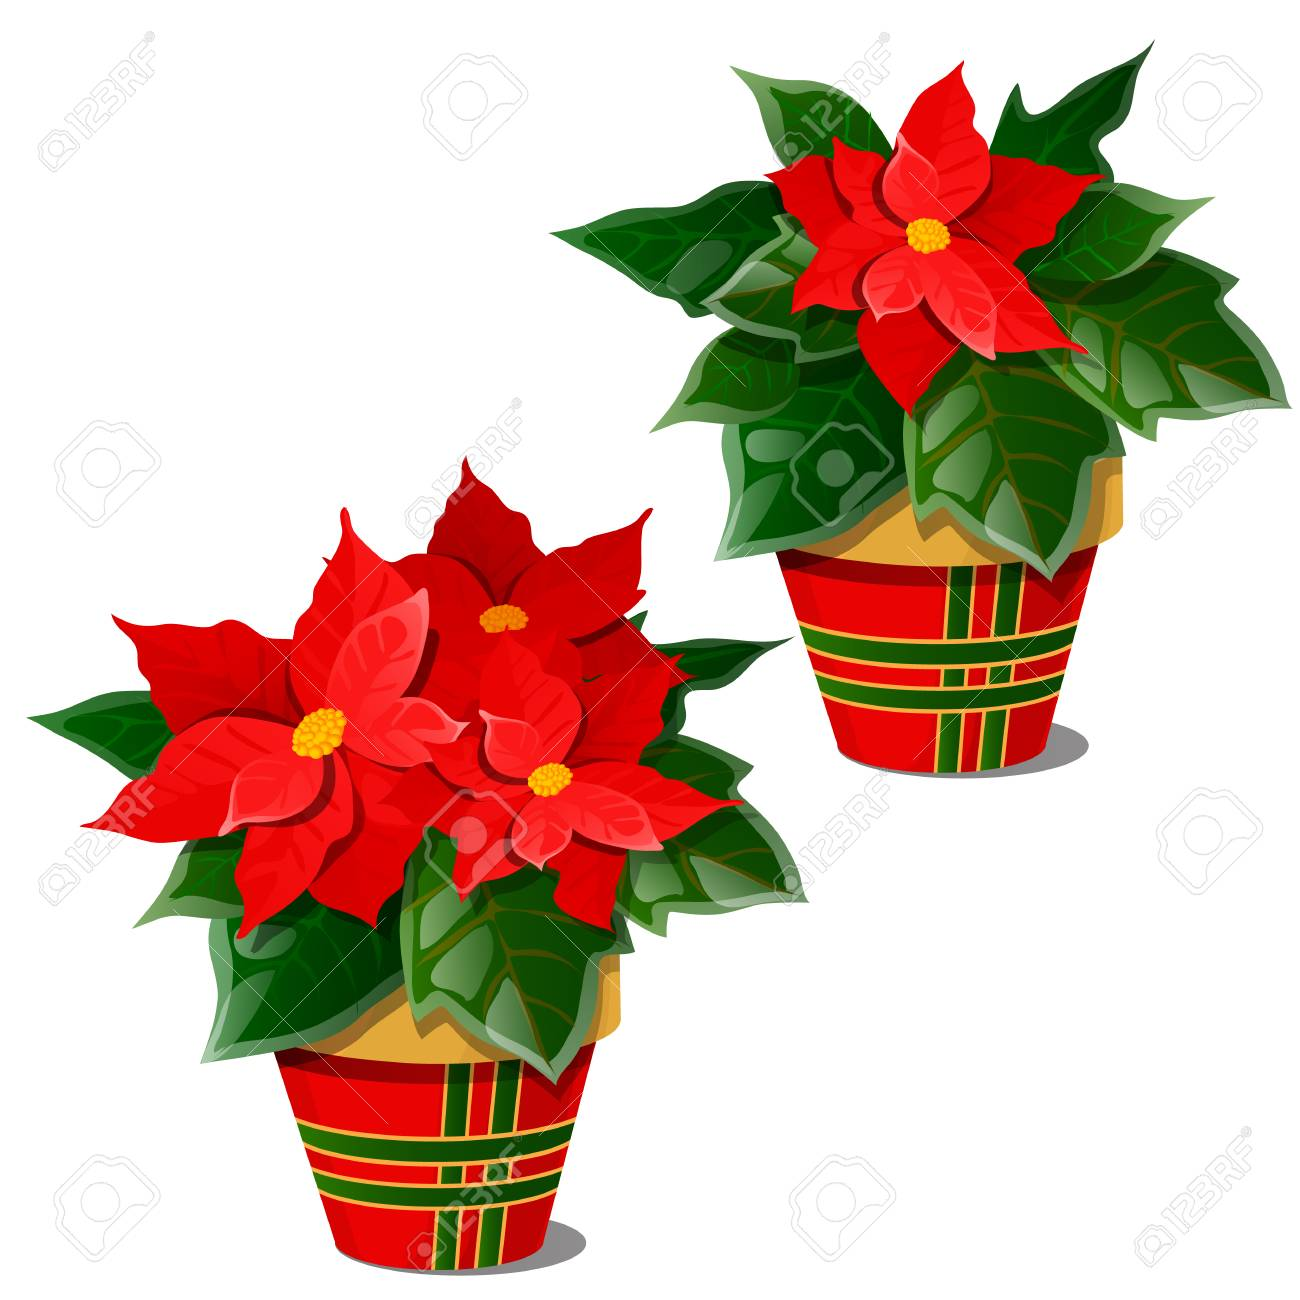 The Flowering Poinsettia Plants In Pots Isolated On White